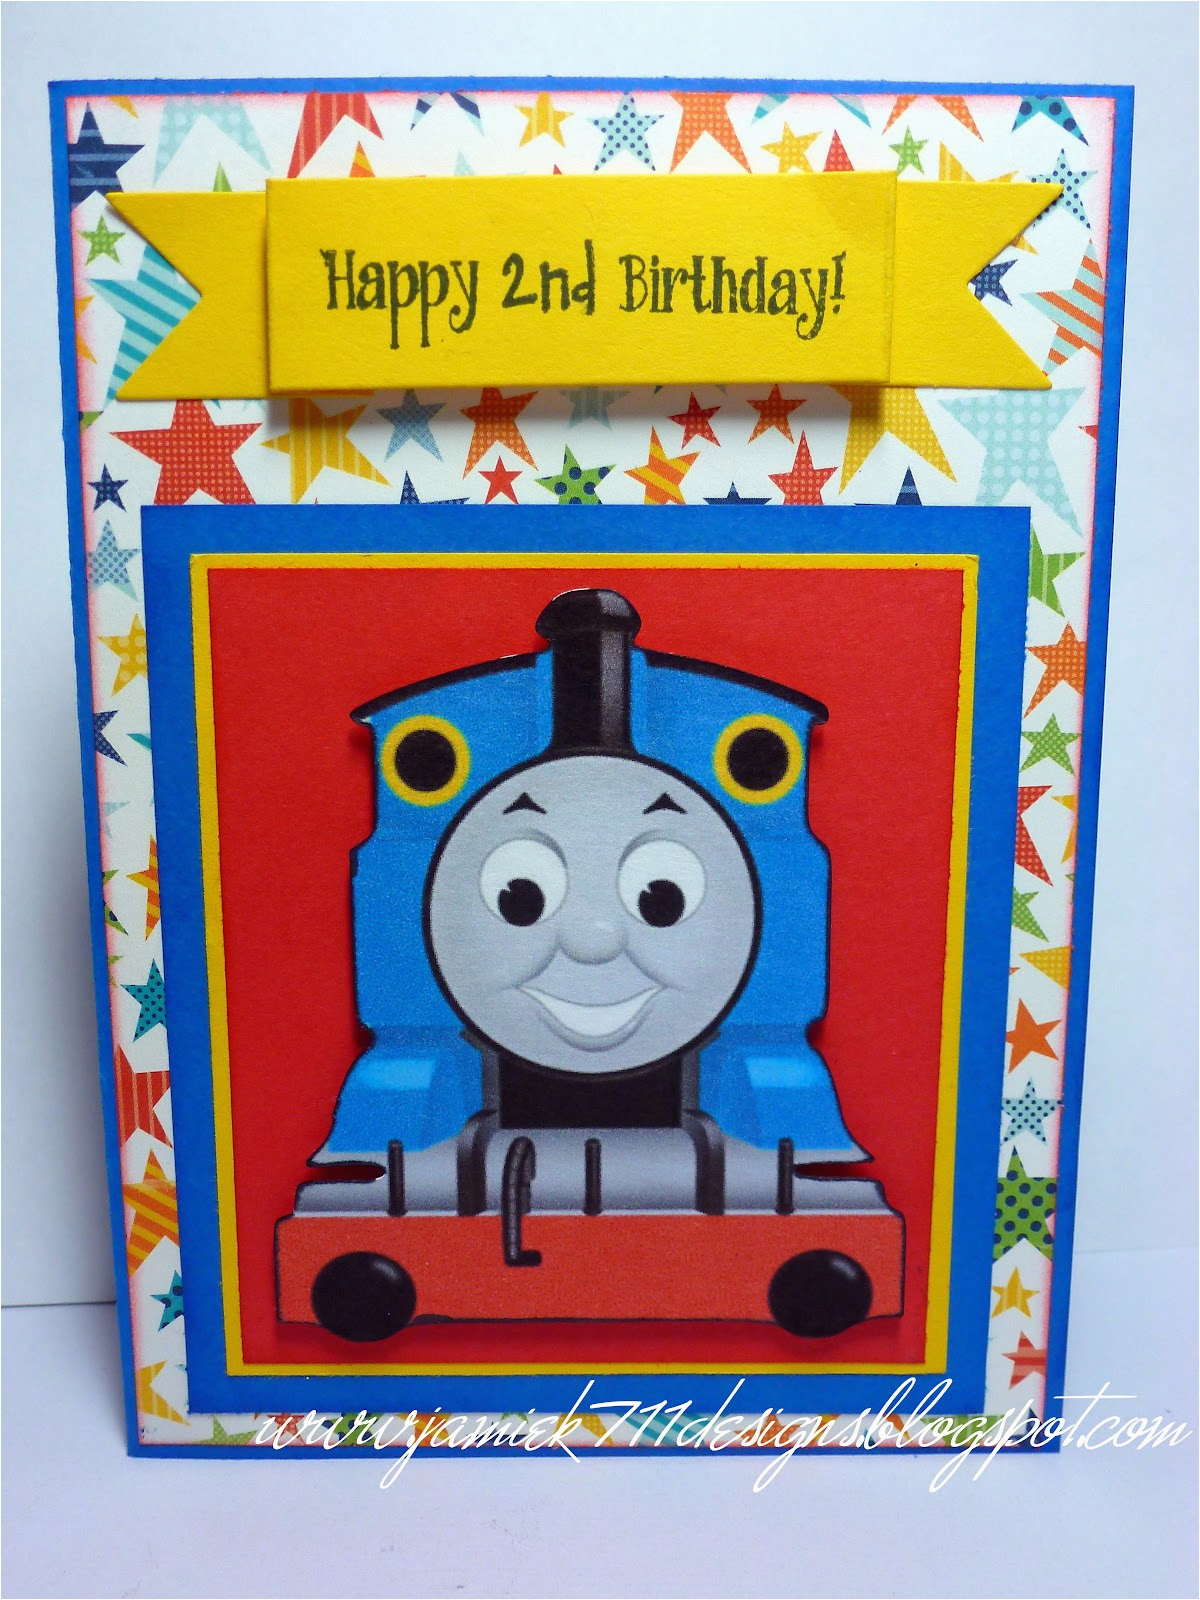 Thomas the Train Birthday Card Printable Jamiek711 Designs 100th Blog Post Blog Hop Winner and